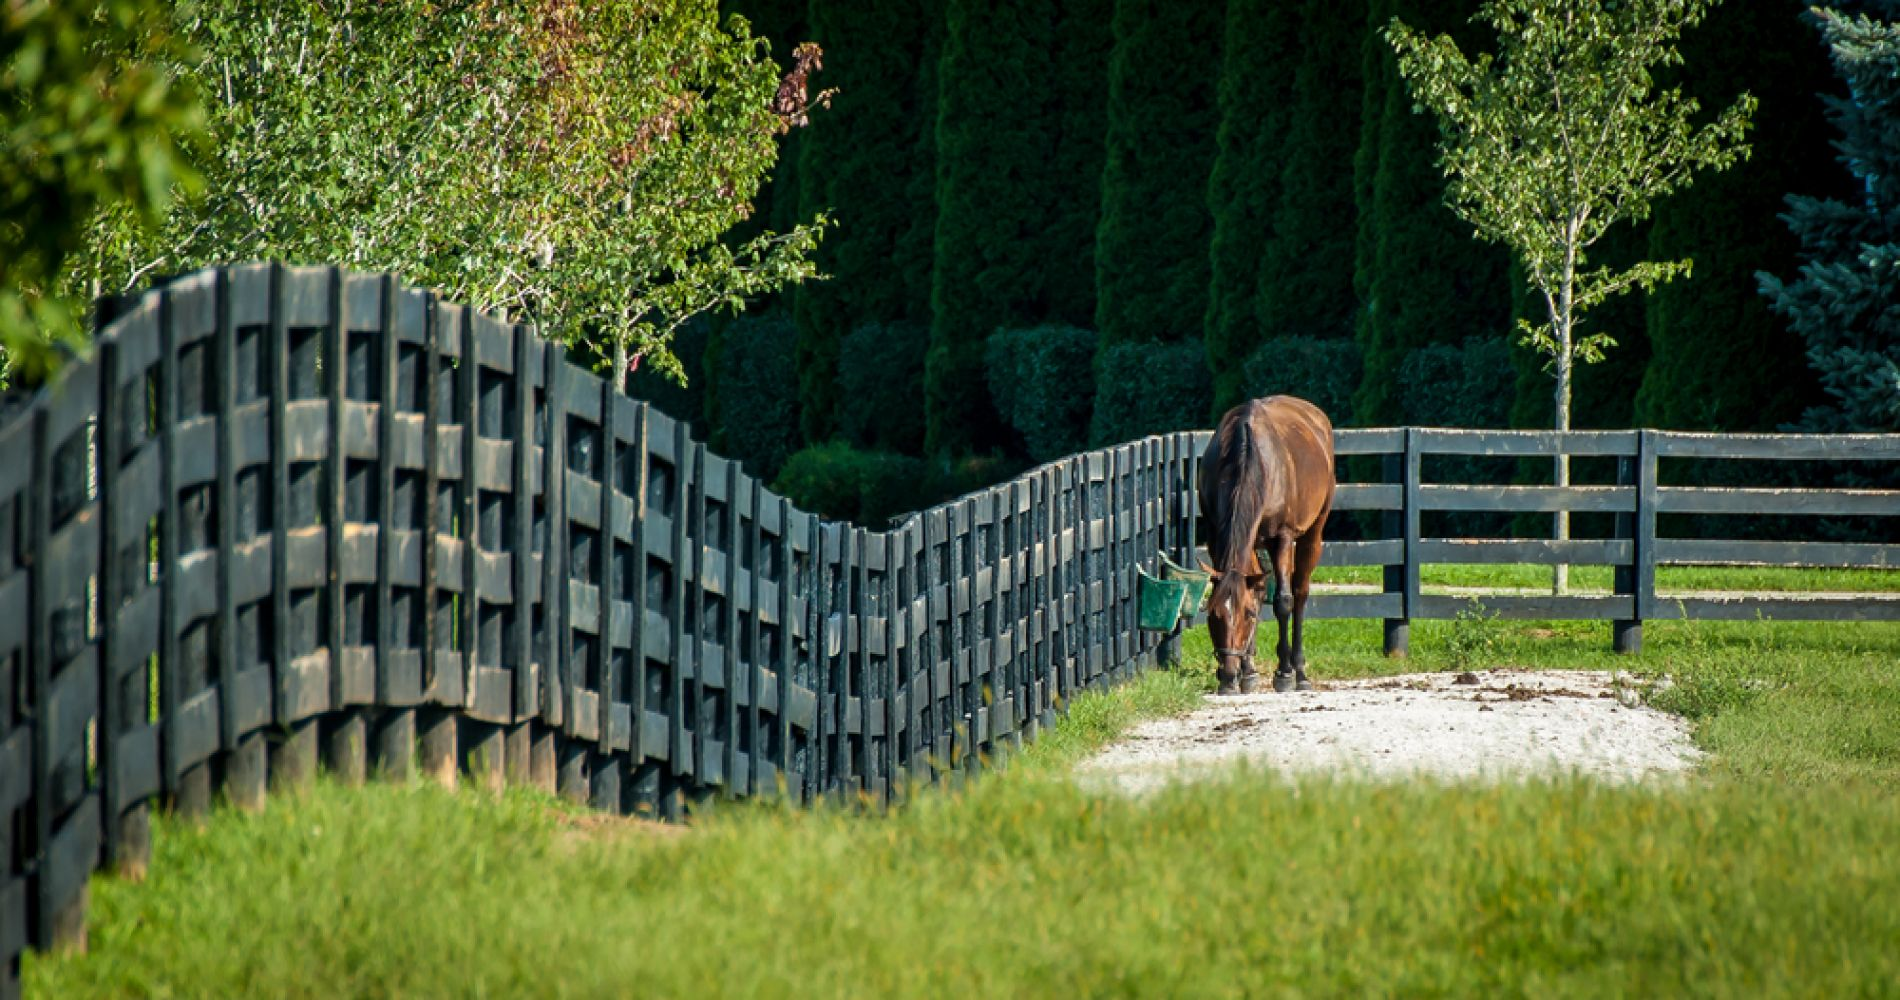 Horse Farm Tour of the Kentucky Bluegrass for Two